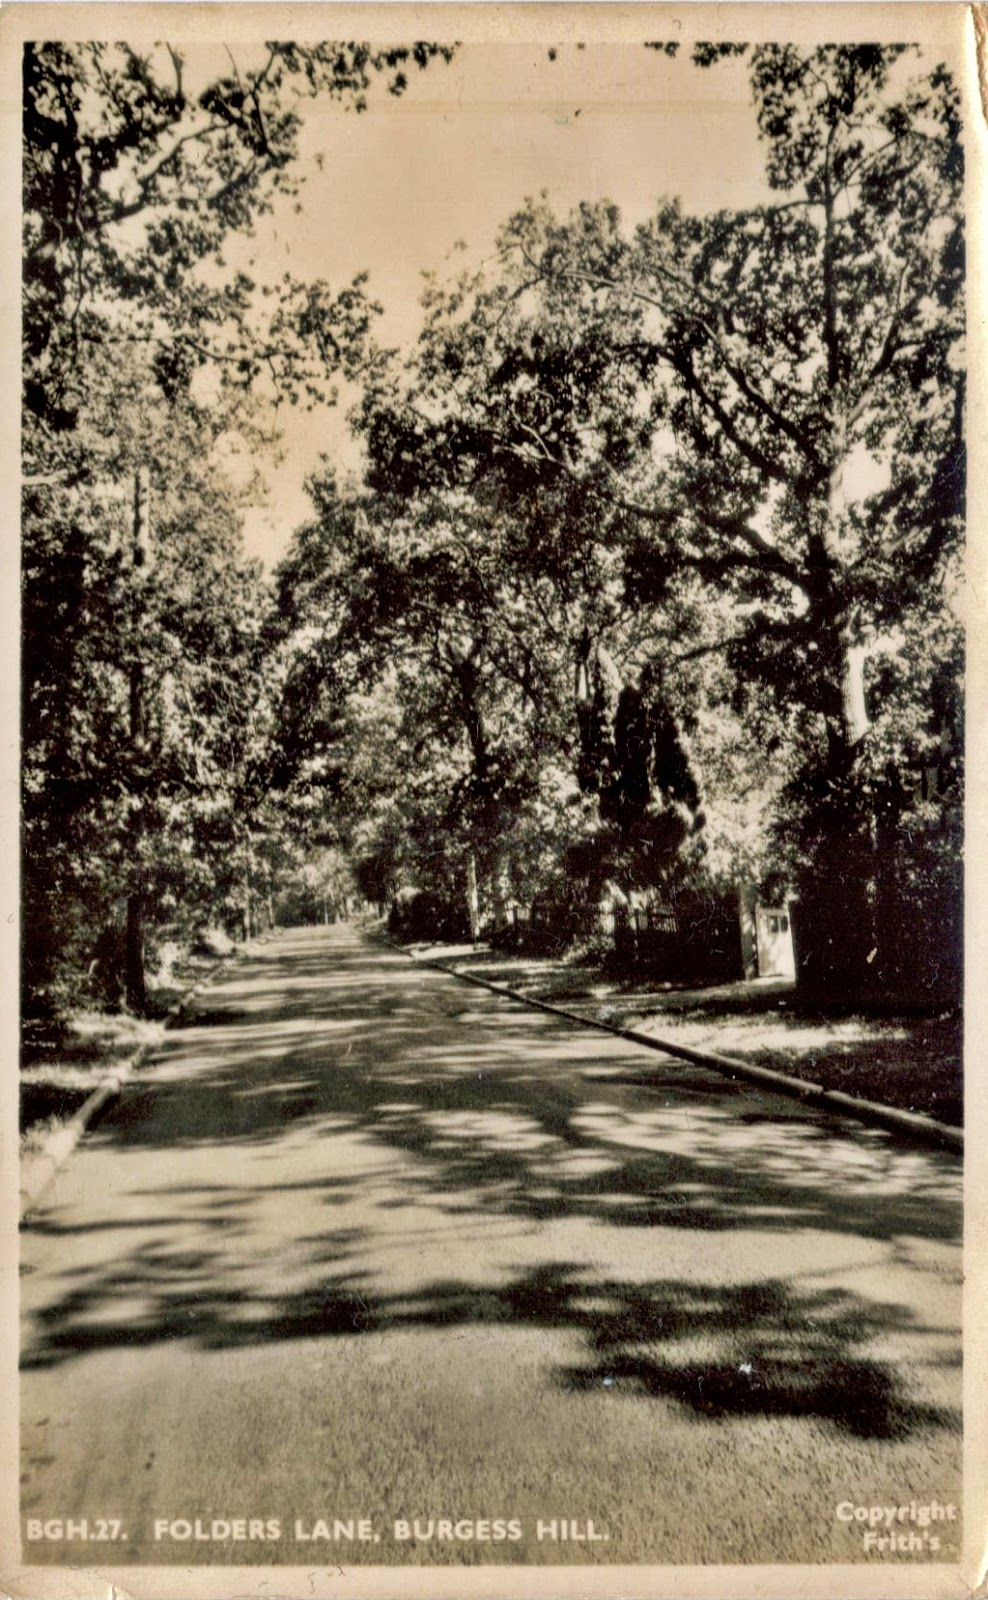 1950s photo of Folders Lane, Burgess Hill, Sussex